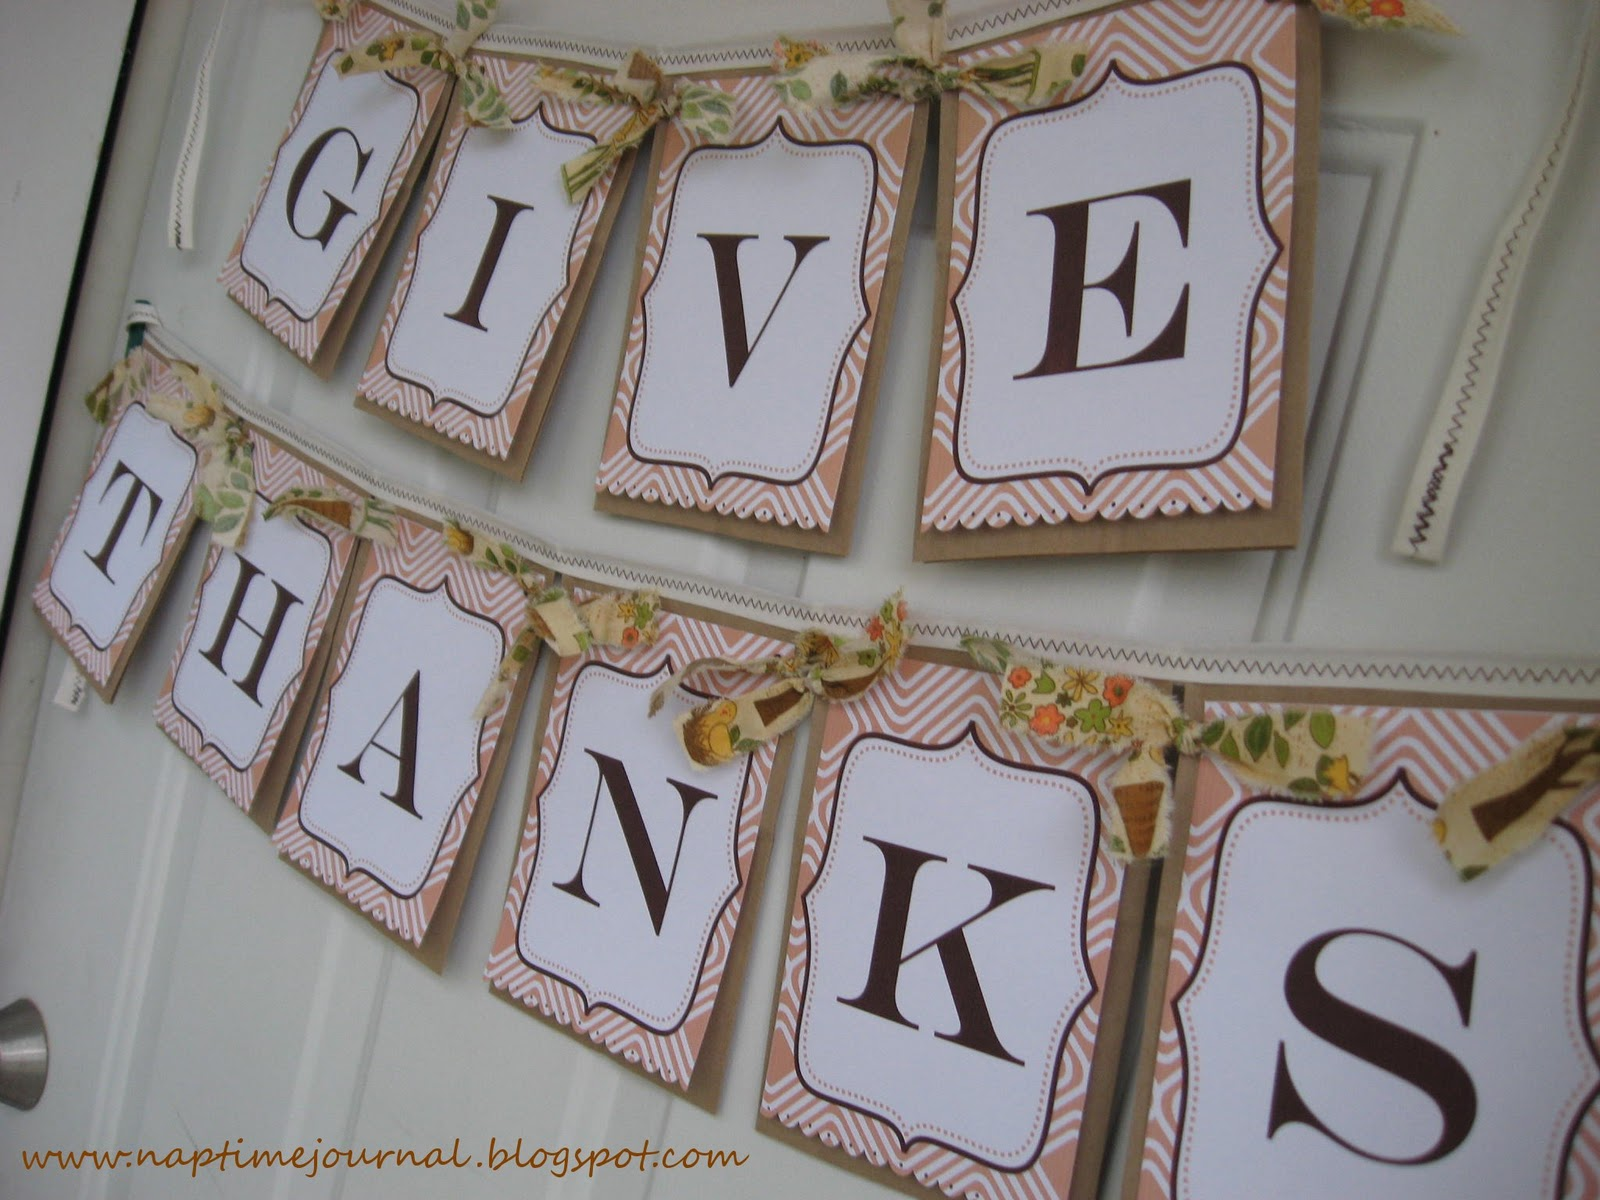 Nap Time Journal Give Thanks Banner  Free Printable Link